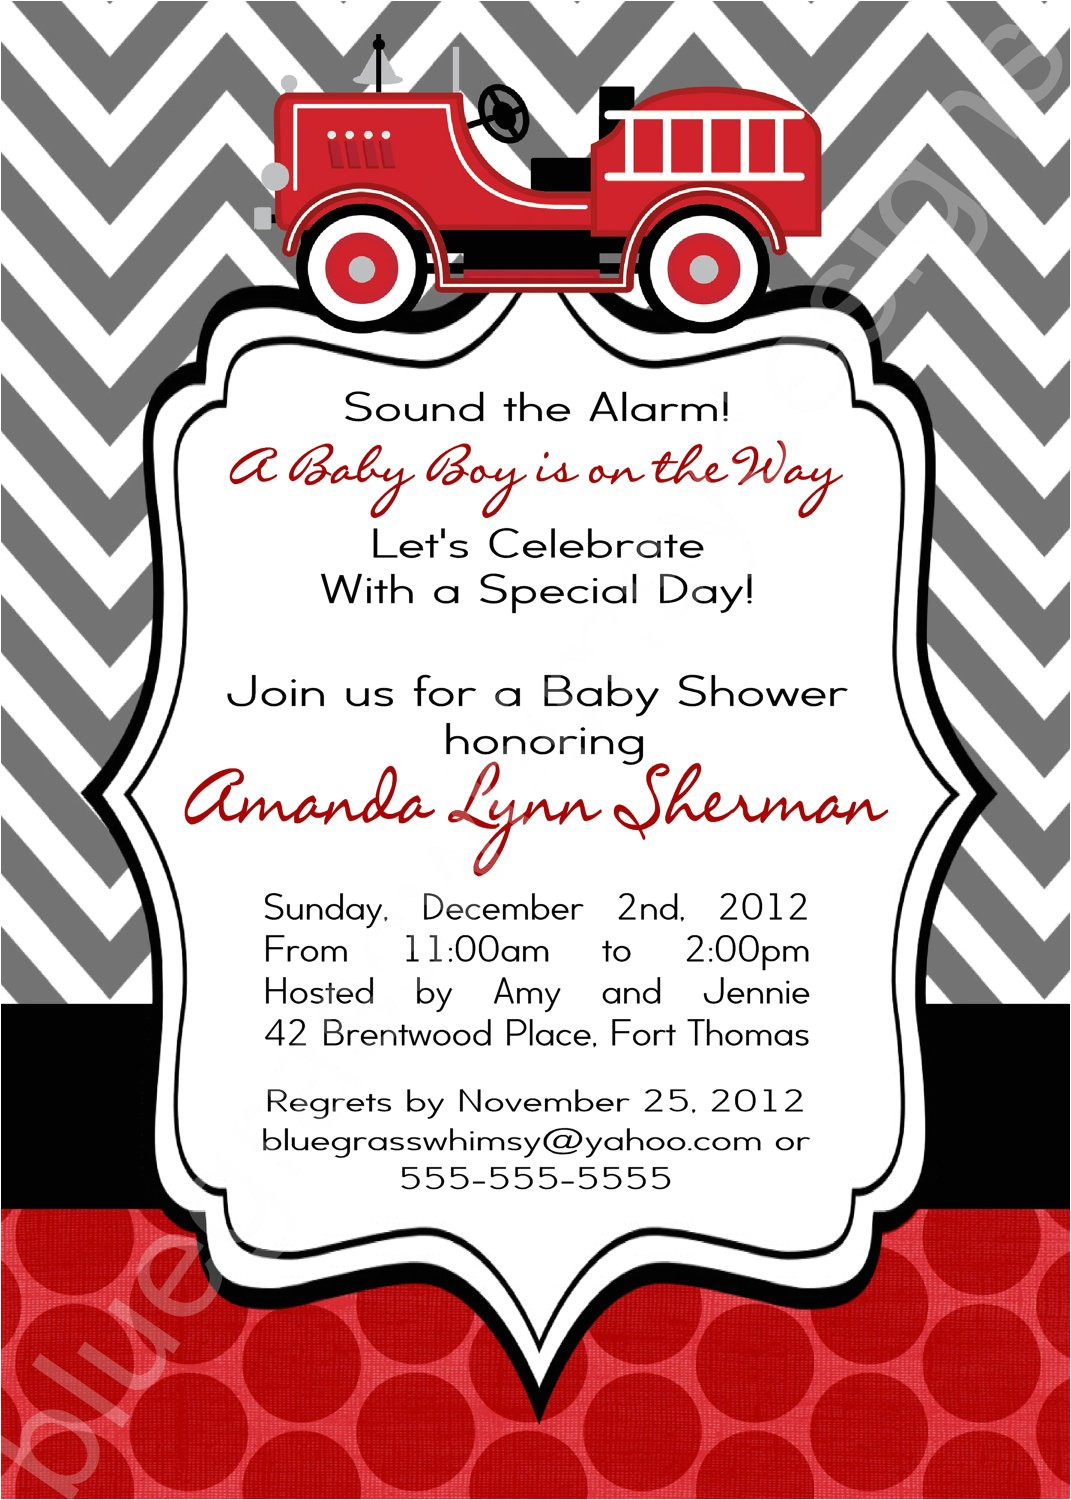 firetruck baby shower invitation for a